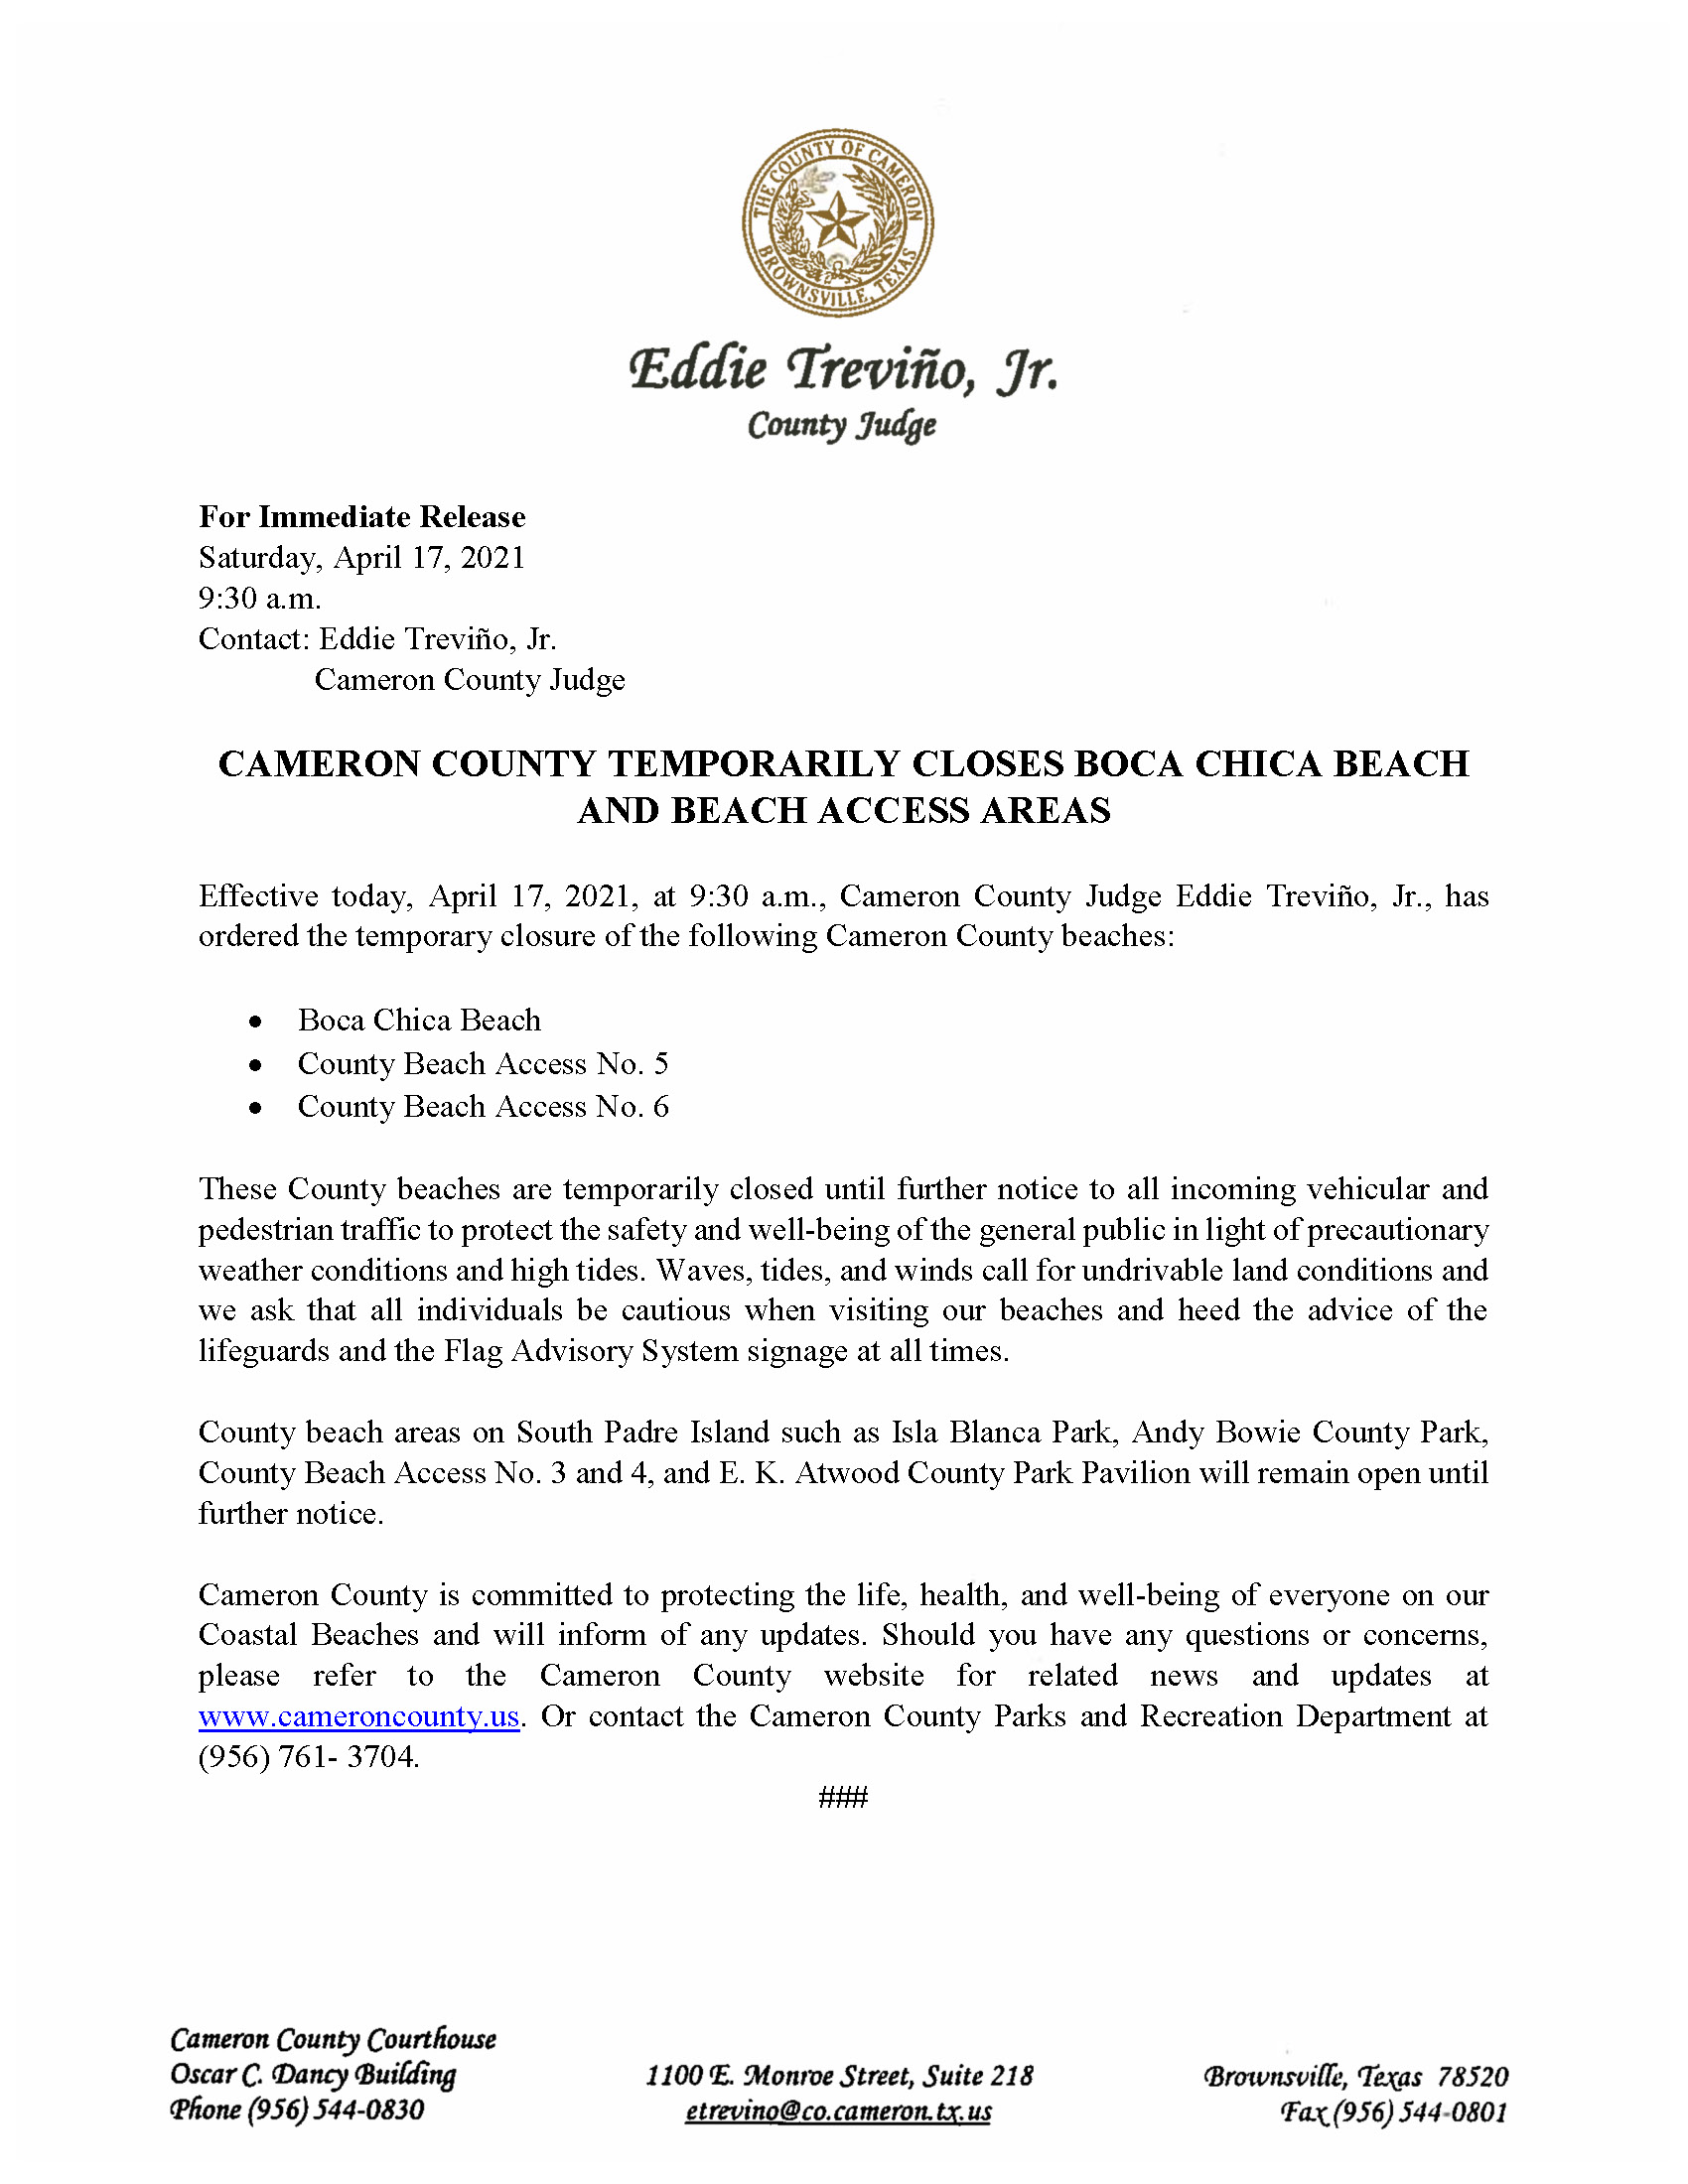 4.17.21 Boca Chica Beach And Access Areas To Close